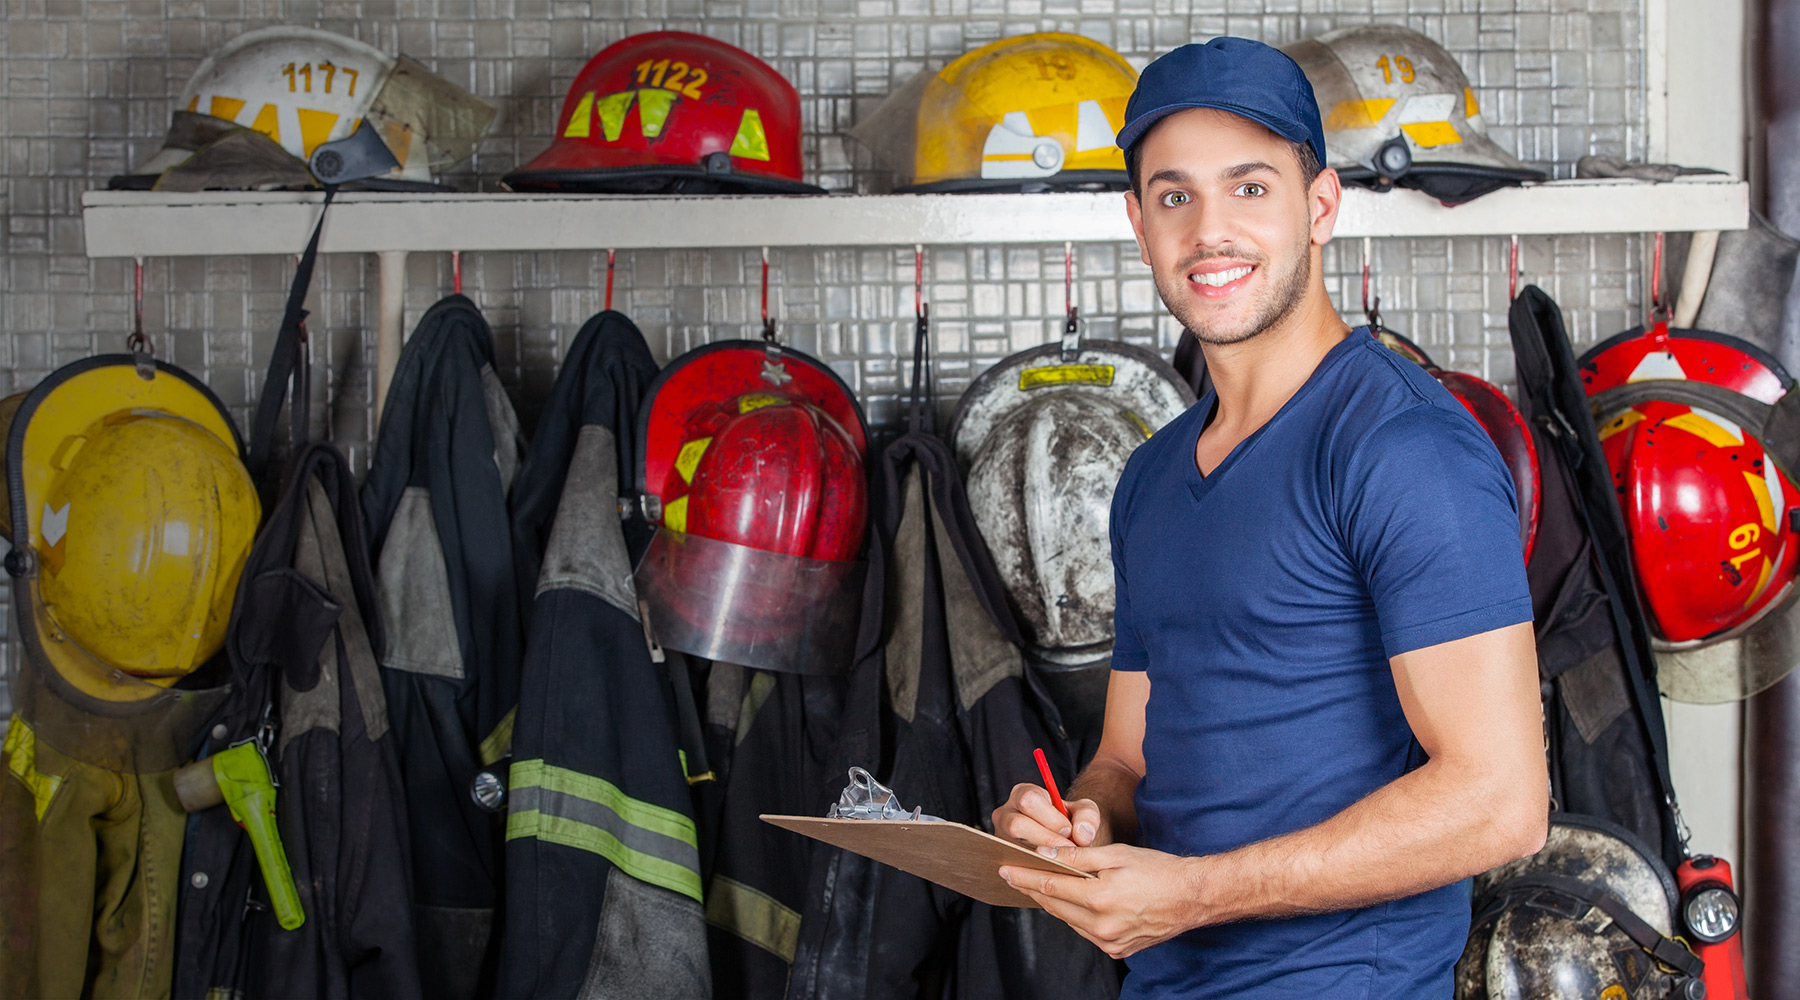 Cimara image of a firefighter holding a notepad